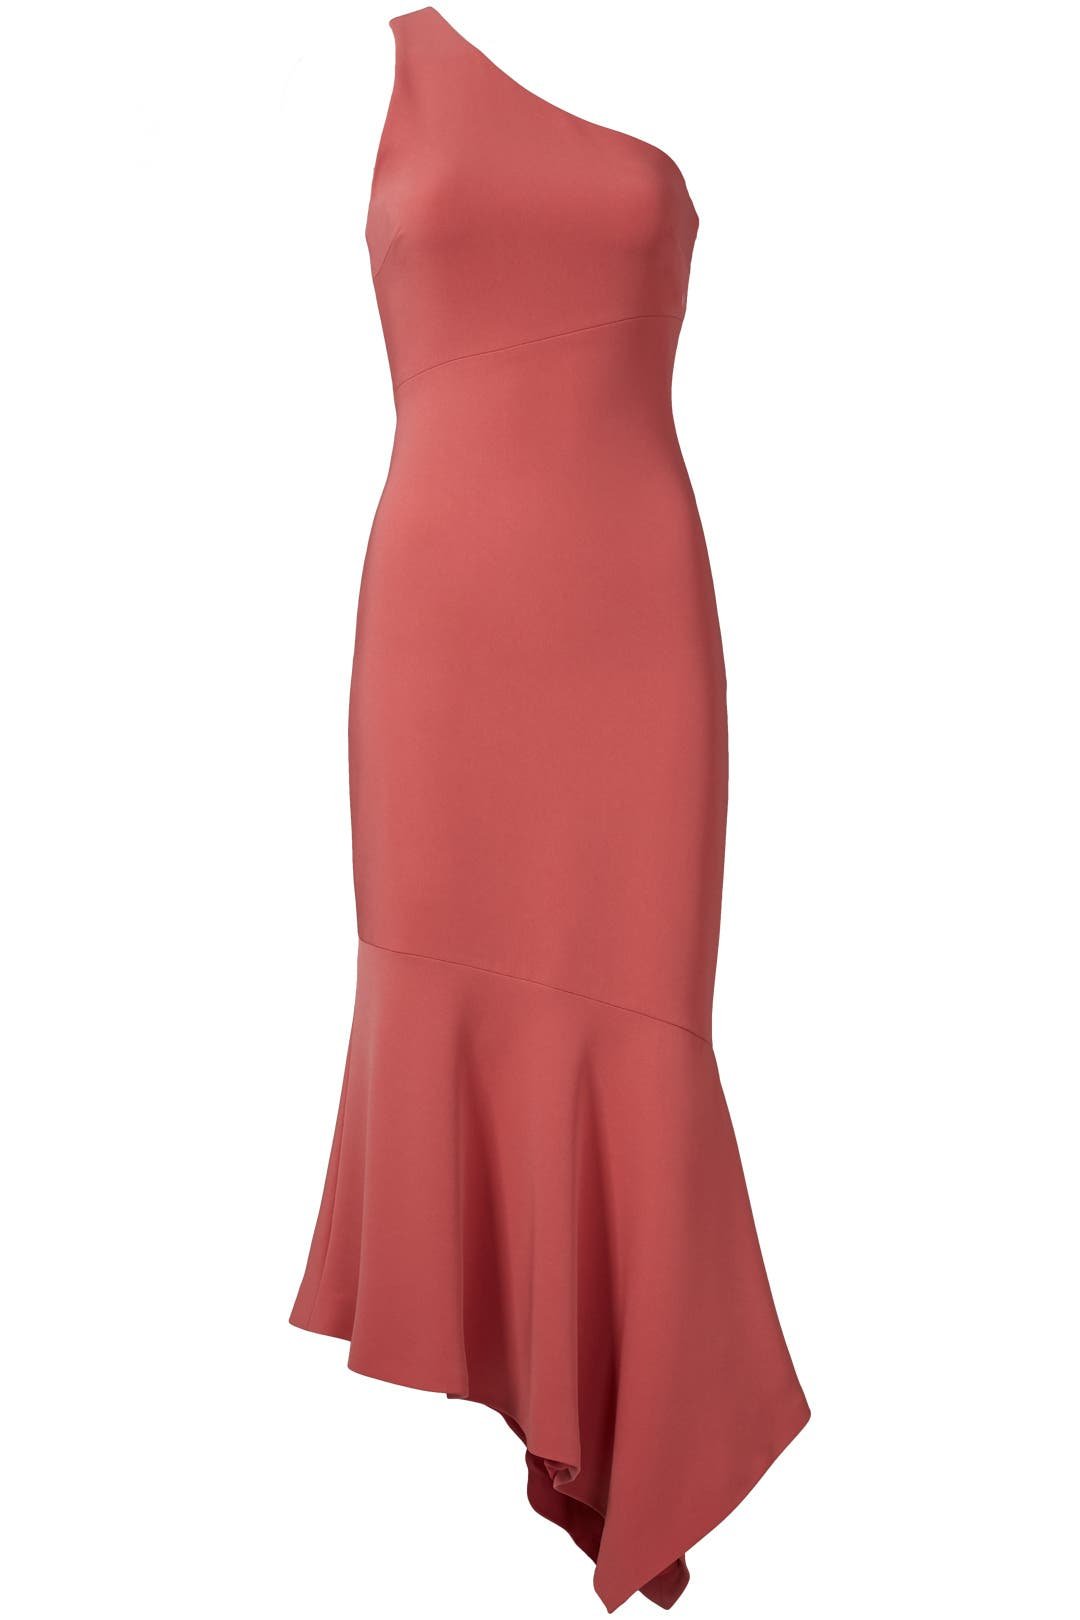 Pink Dulcina Dress by Cinq à Sept for $50 - $70 | Rent the Runway